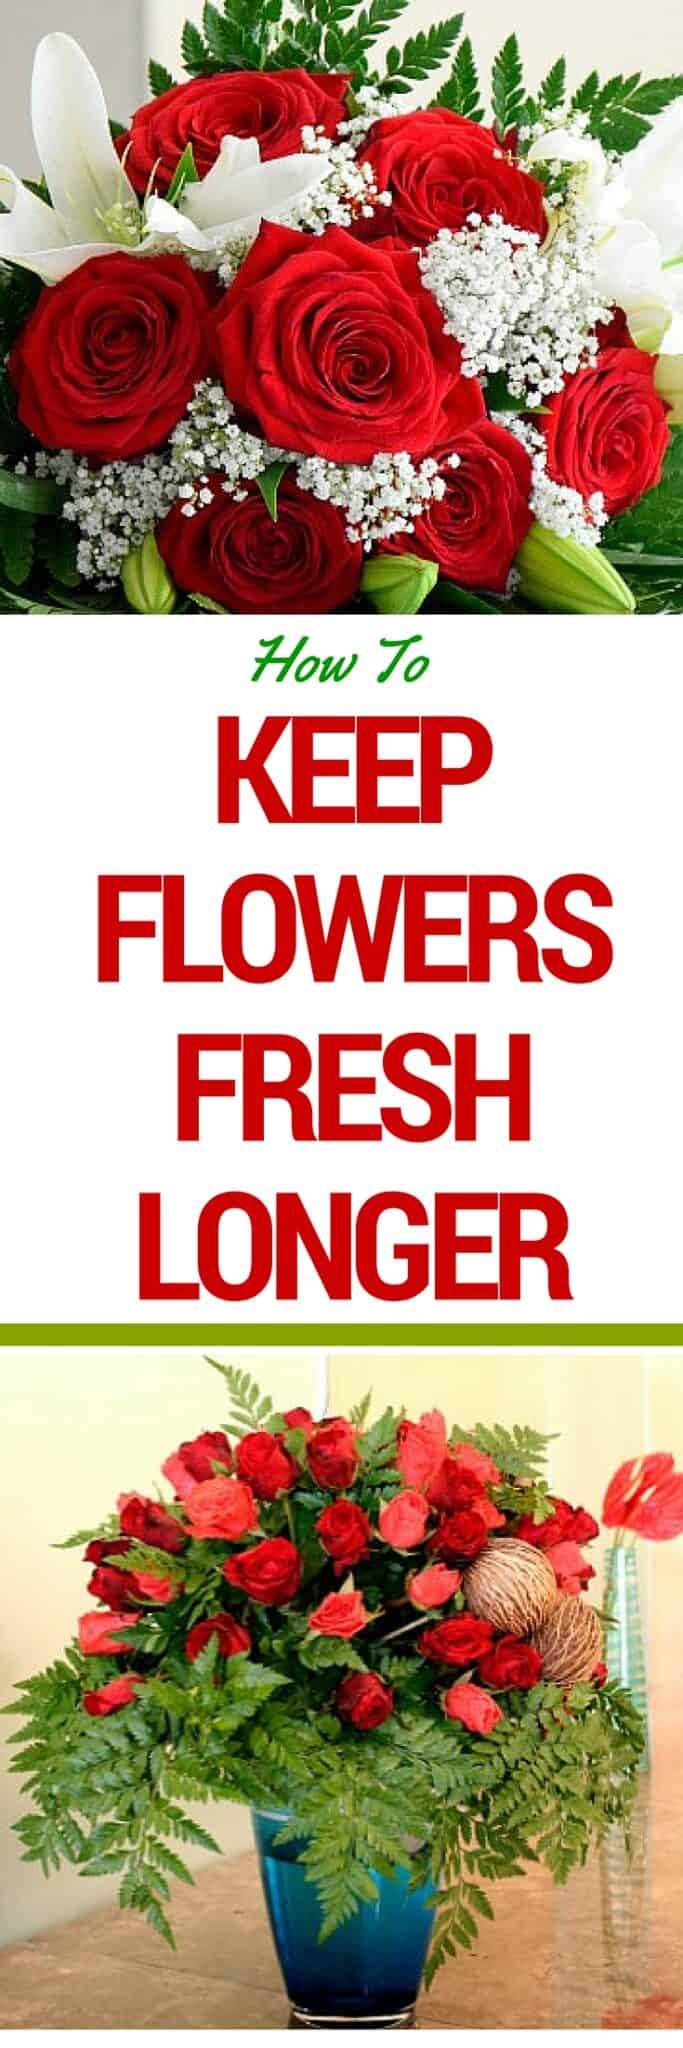 How to keep flowers fresh longer housewife how tos how to keep flowers fresh longer make them last twice as long with these izmirmasajfo